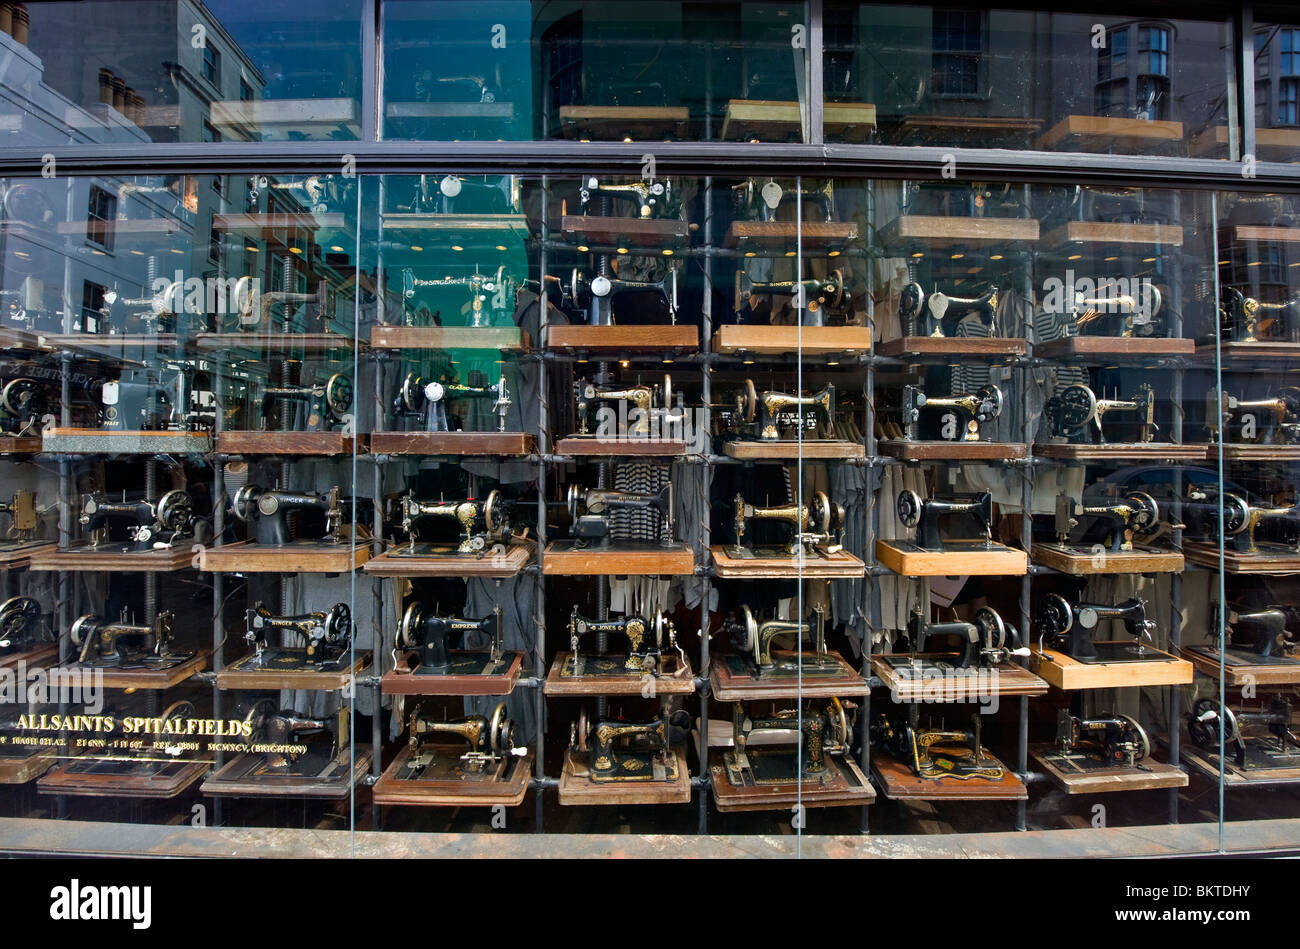 A shop window display full of old fashioned Singer sewing machines, a fashion  clothes shop in Brighton, Sussex - Stock Image